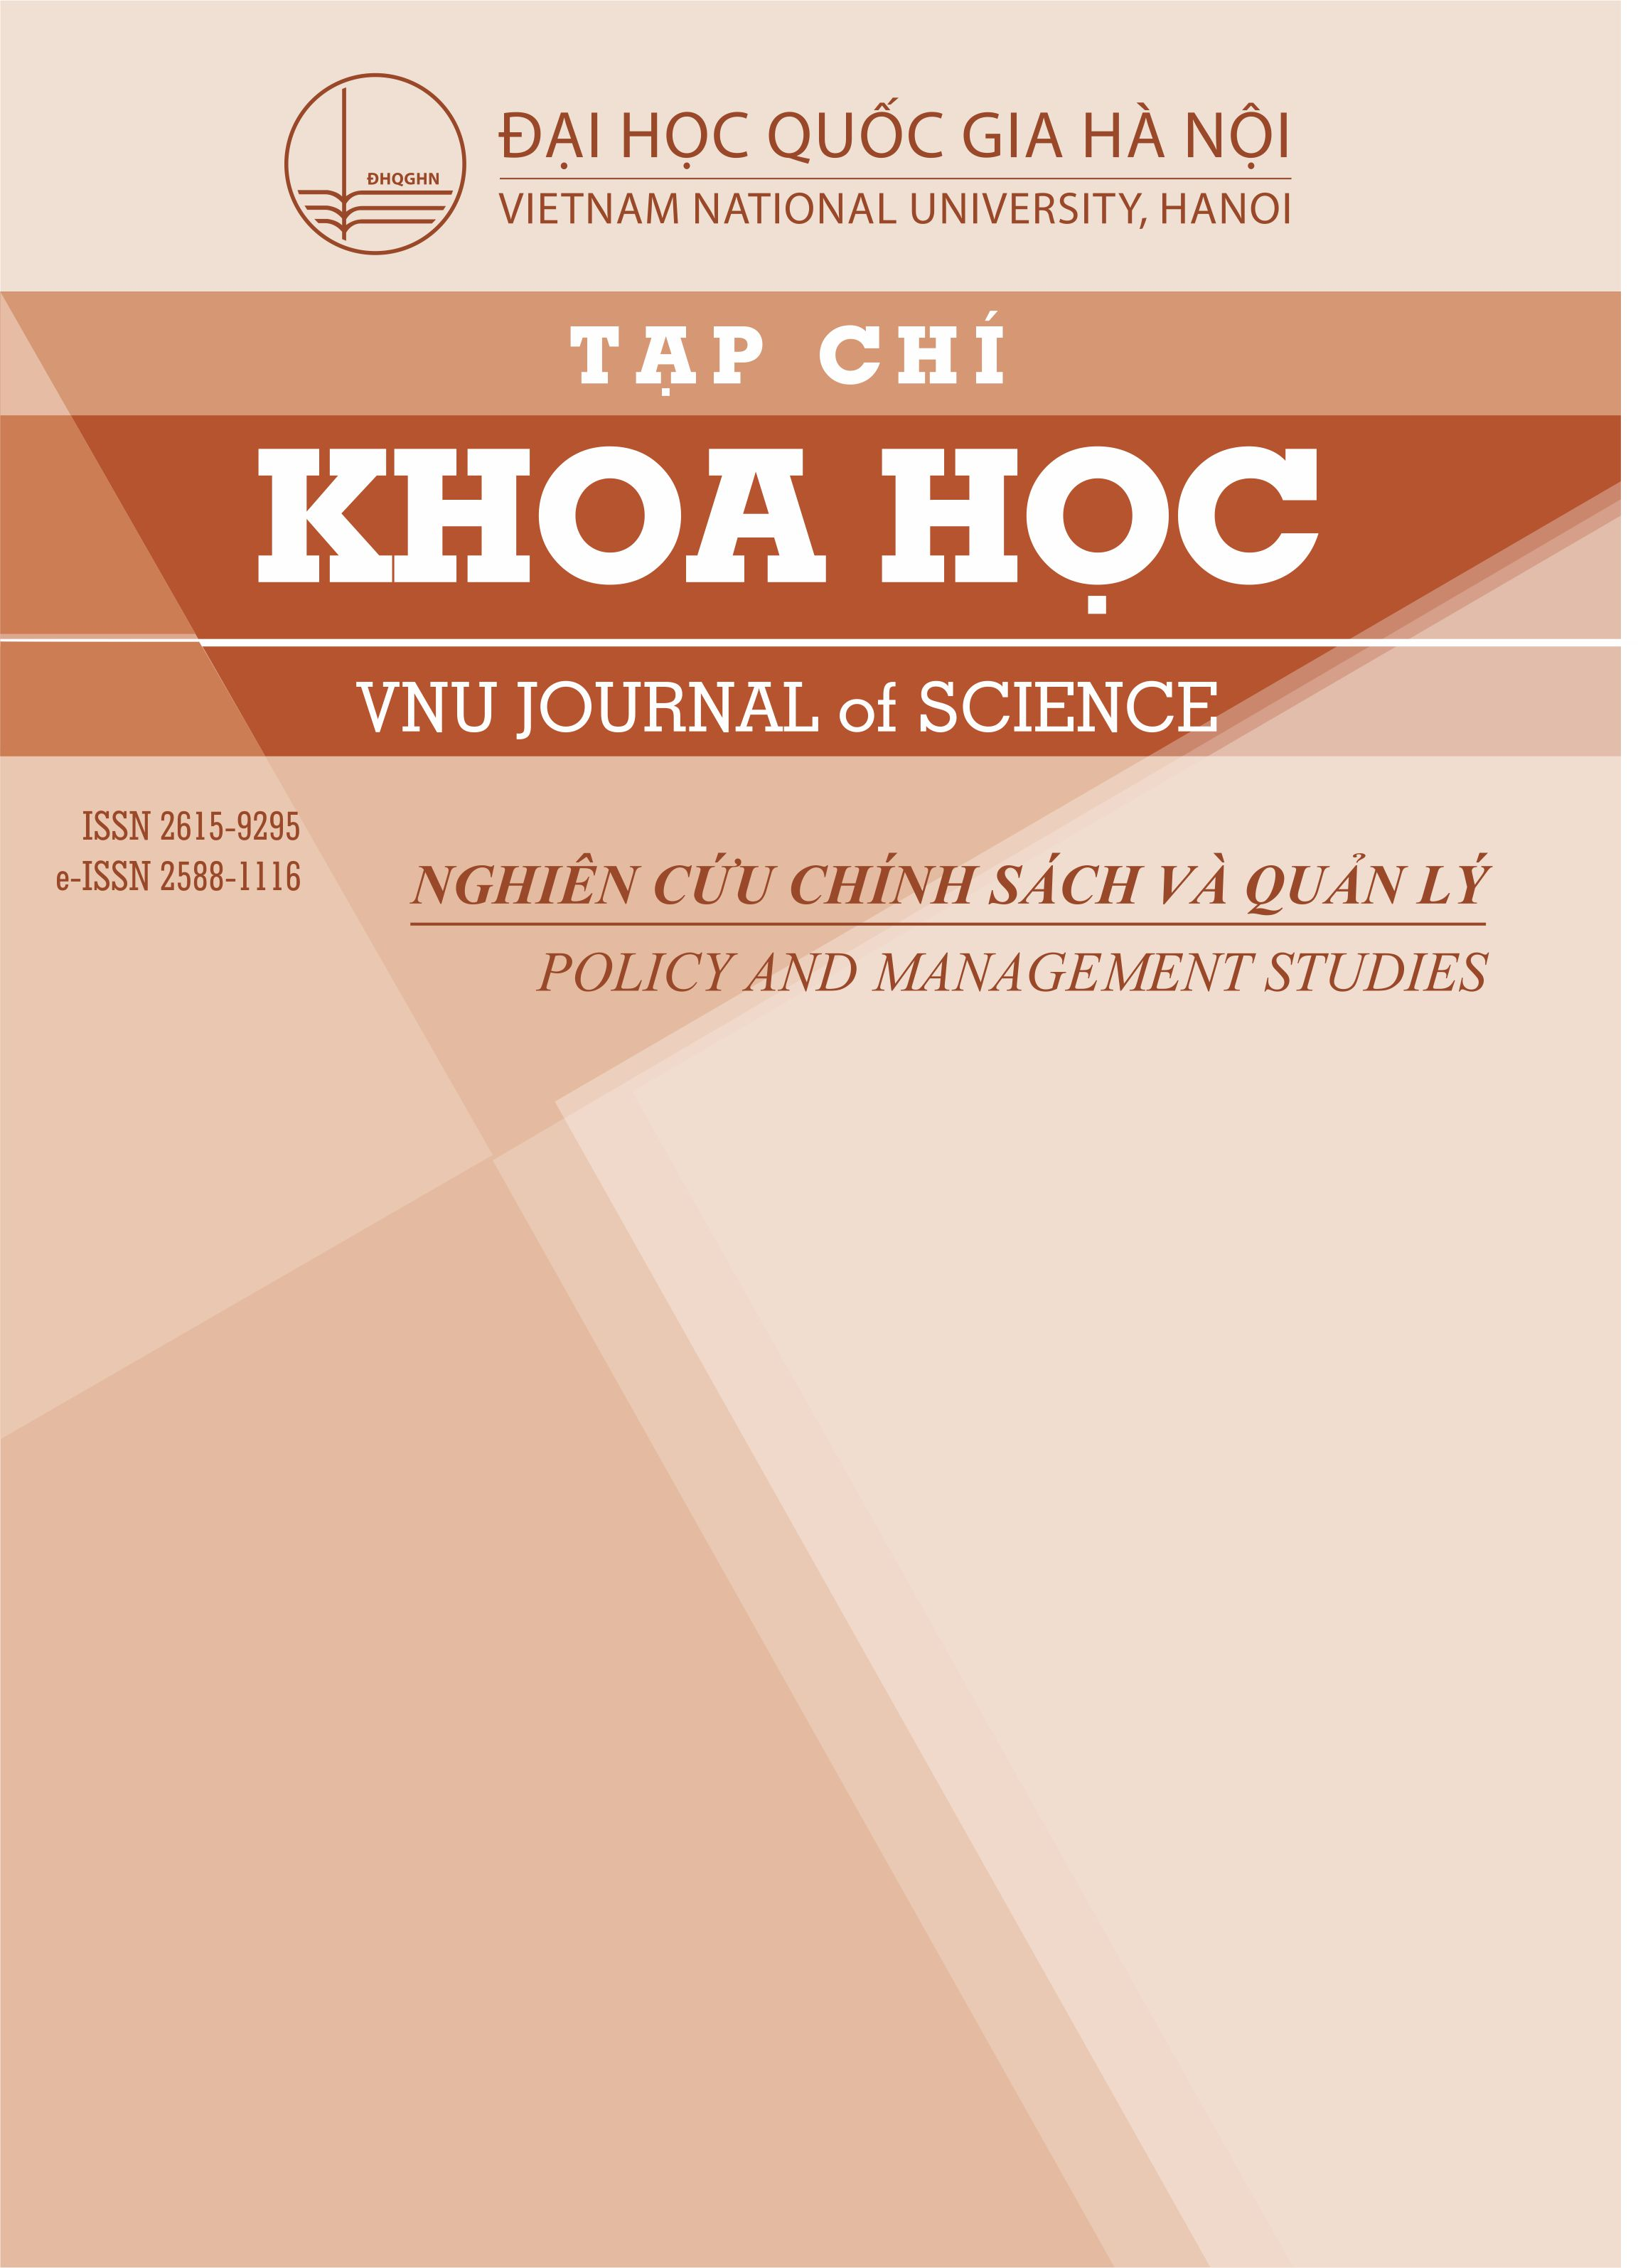 VNU Journal of Science: Policy and Management Studies